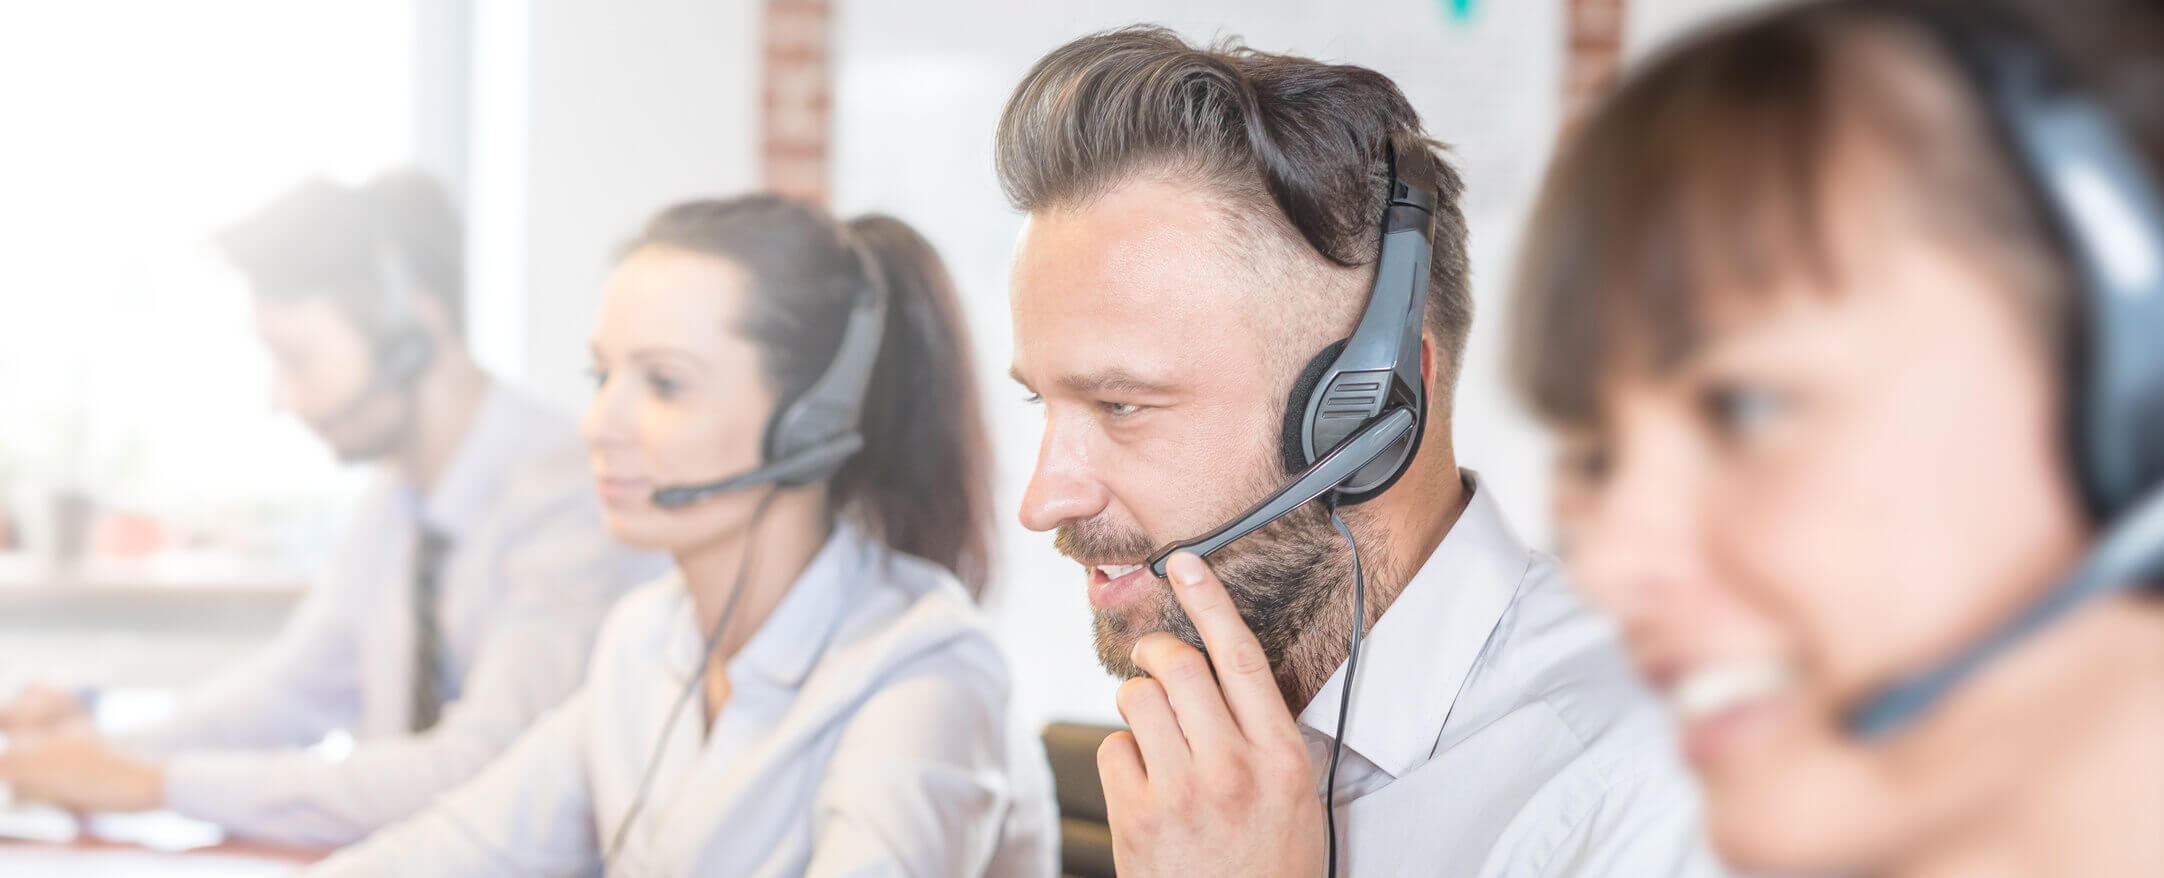 High Performance Inbound Contact Centre Management course